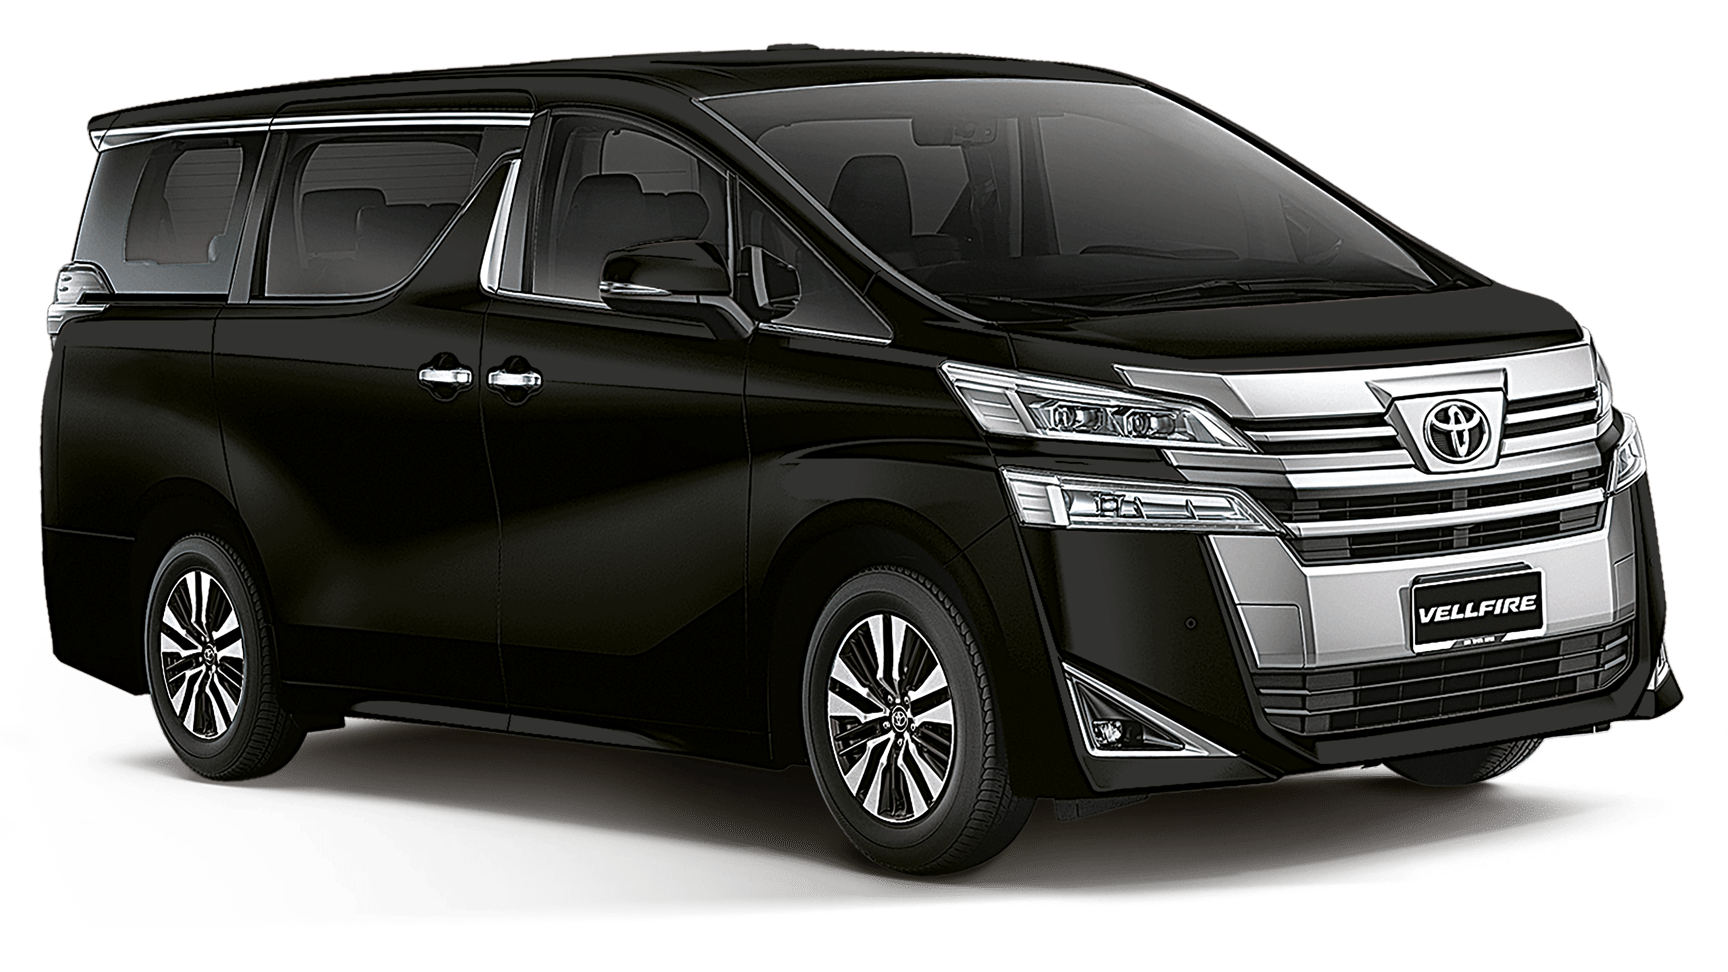 all new alphard vs vellfire spesifikasi kijang innova 2014 toyota malaysia photos